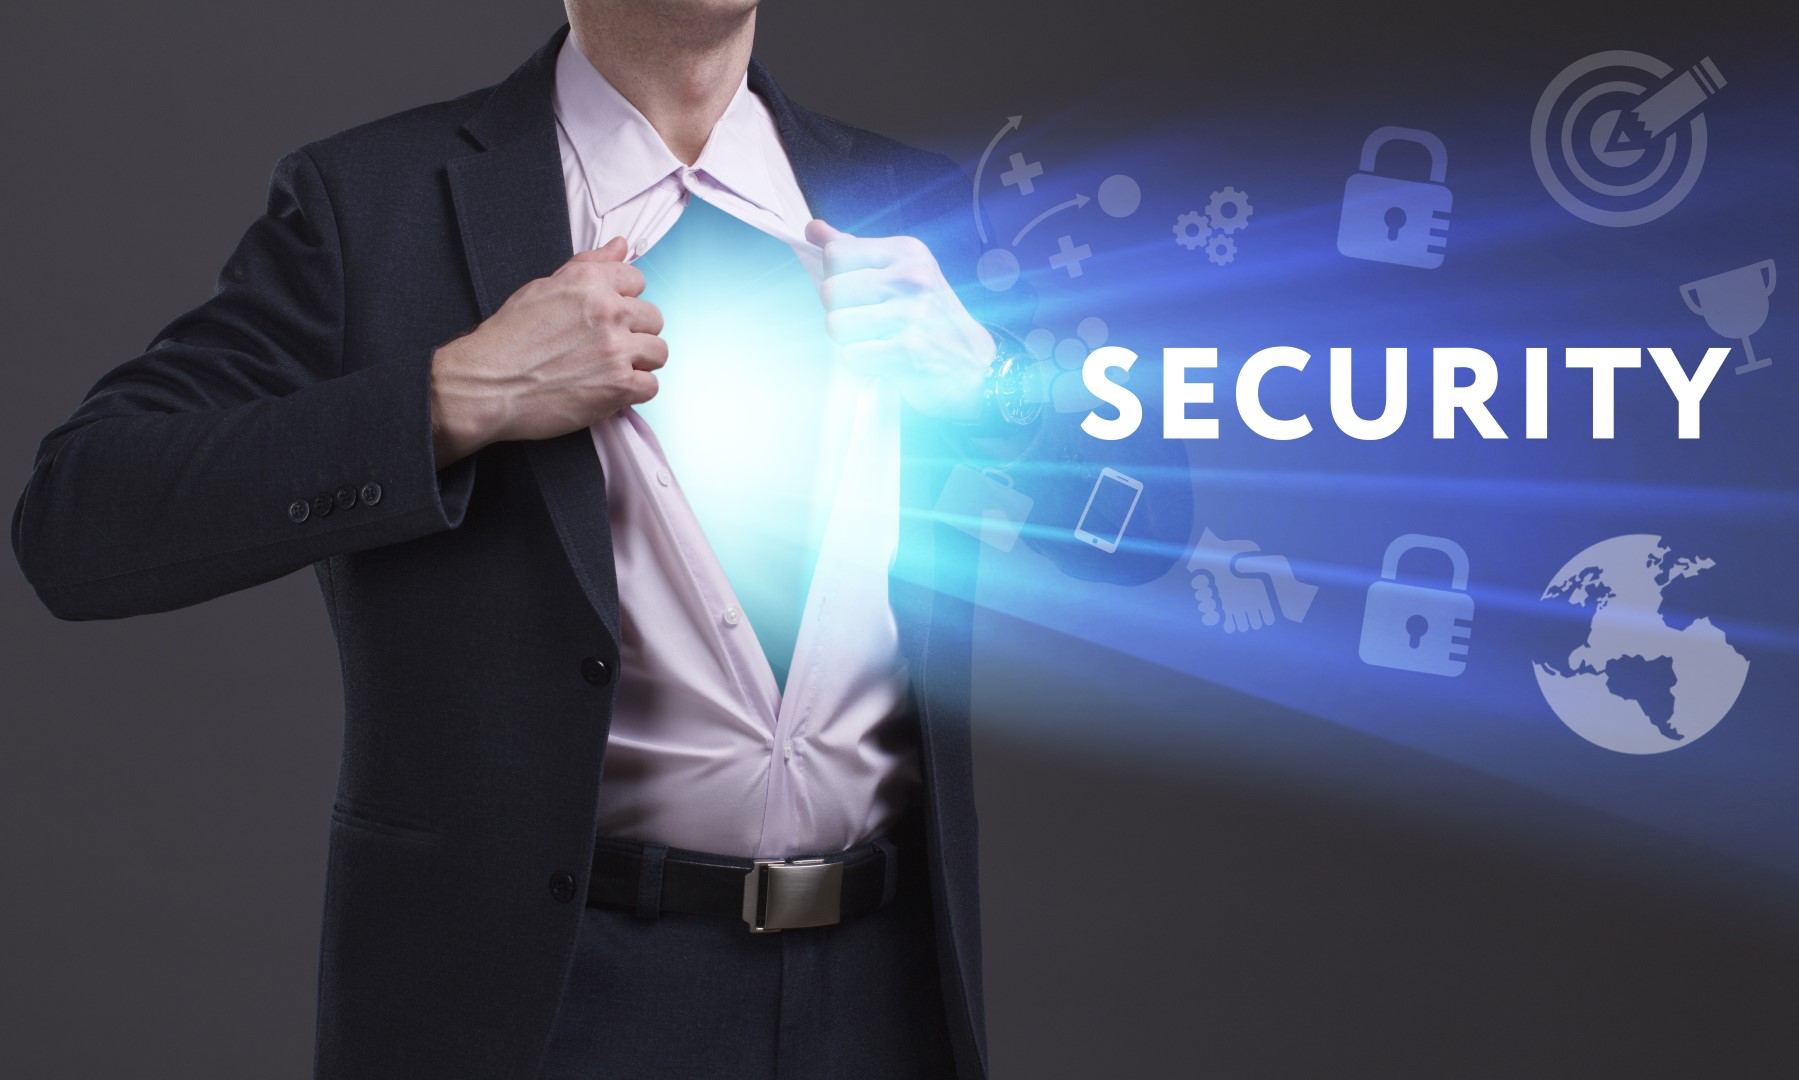 CEO OF BECRYPT TO SPEAK AT CYBER-SECURITY SUMMIT IN NYC